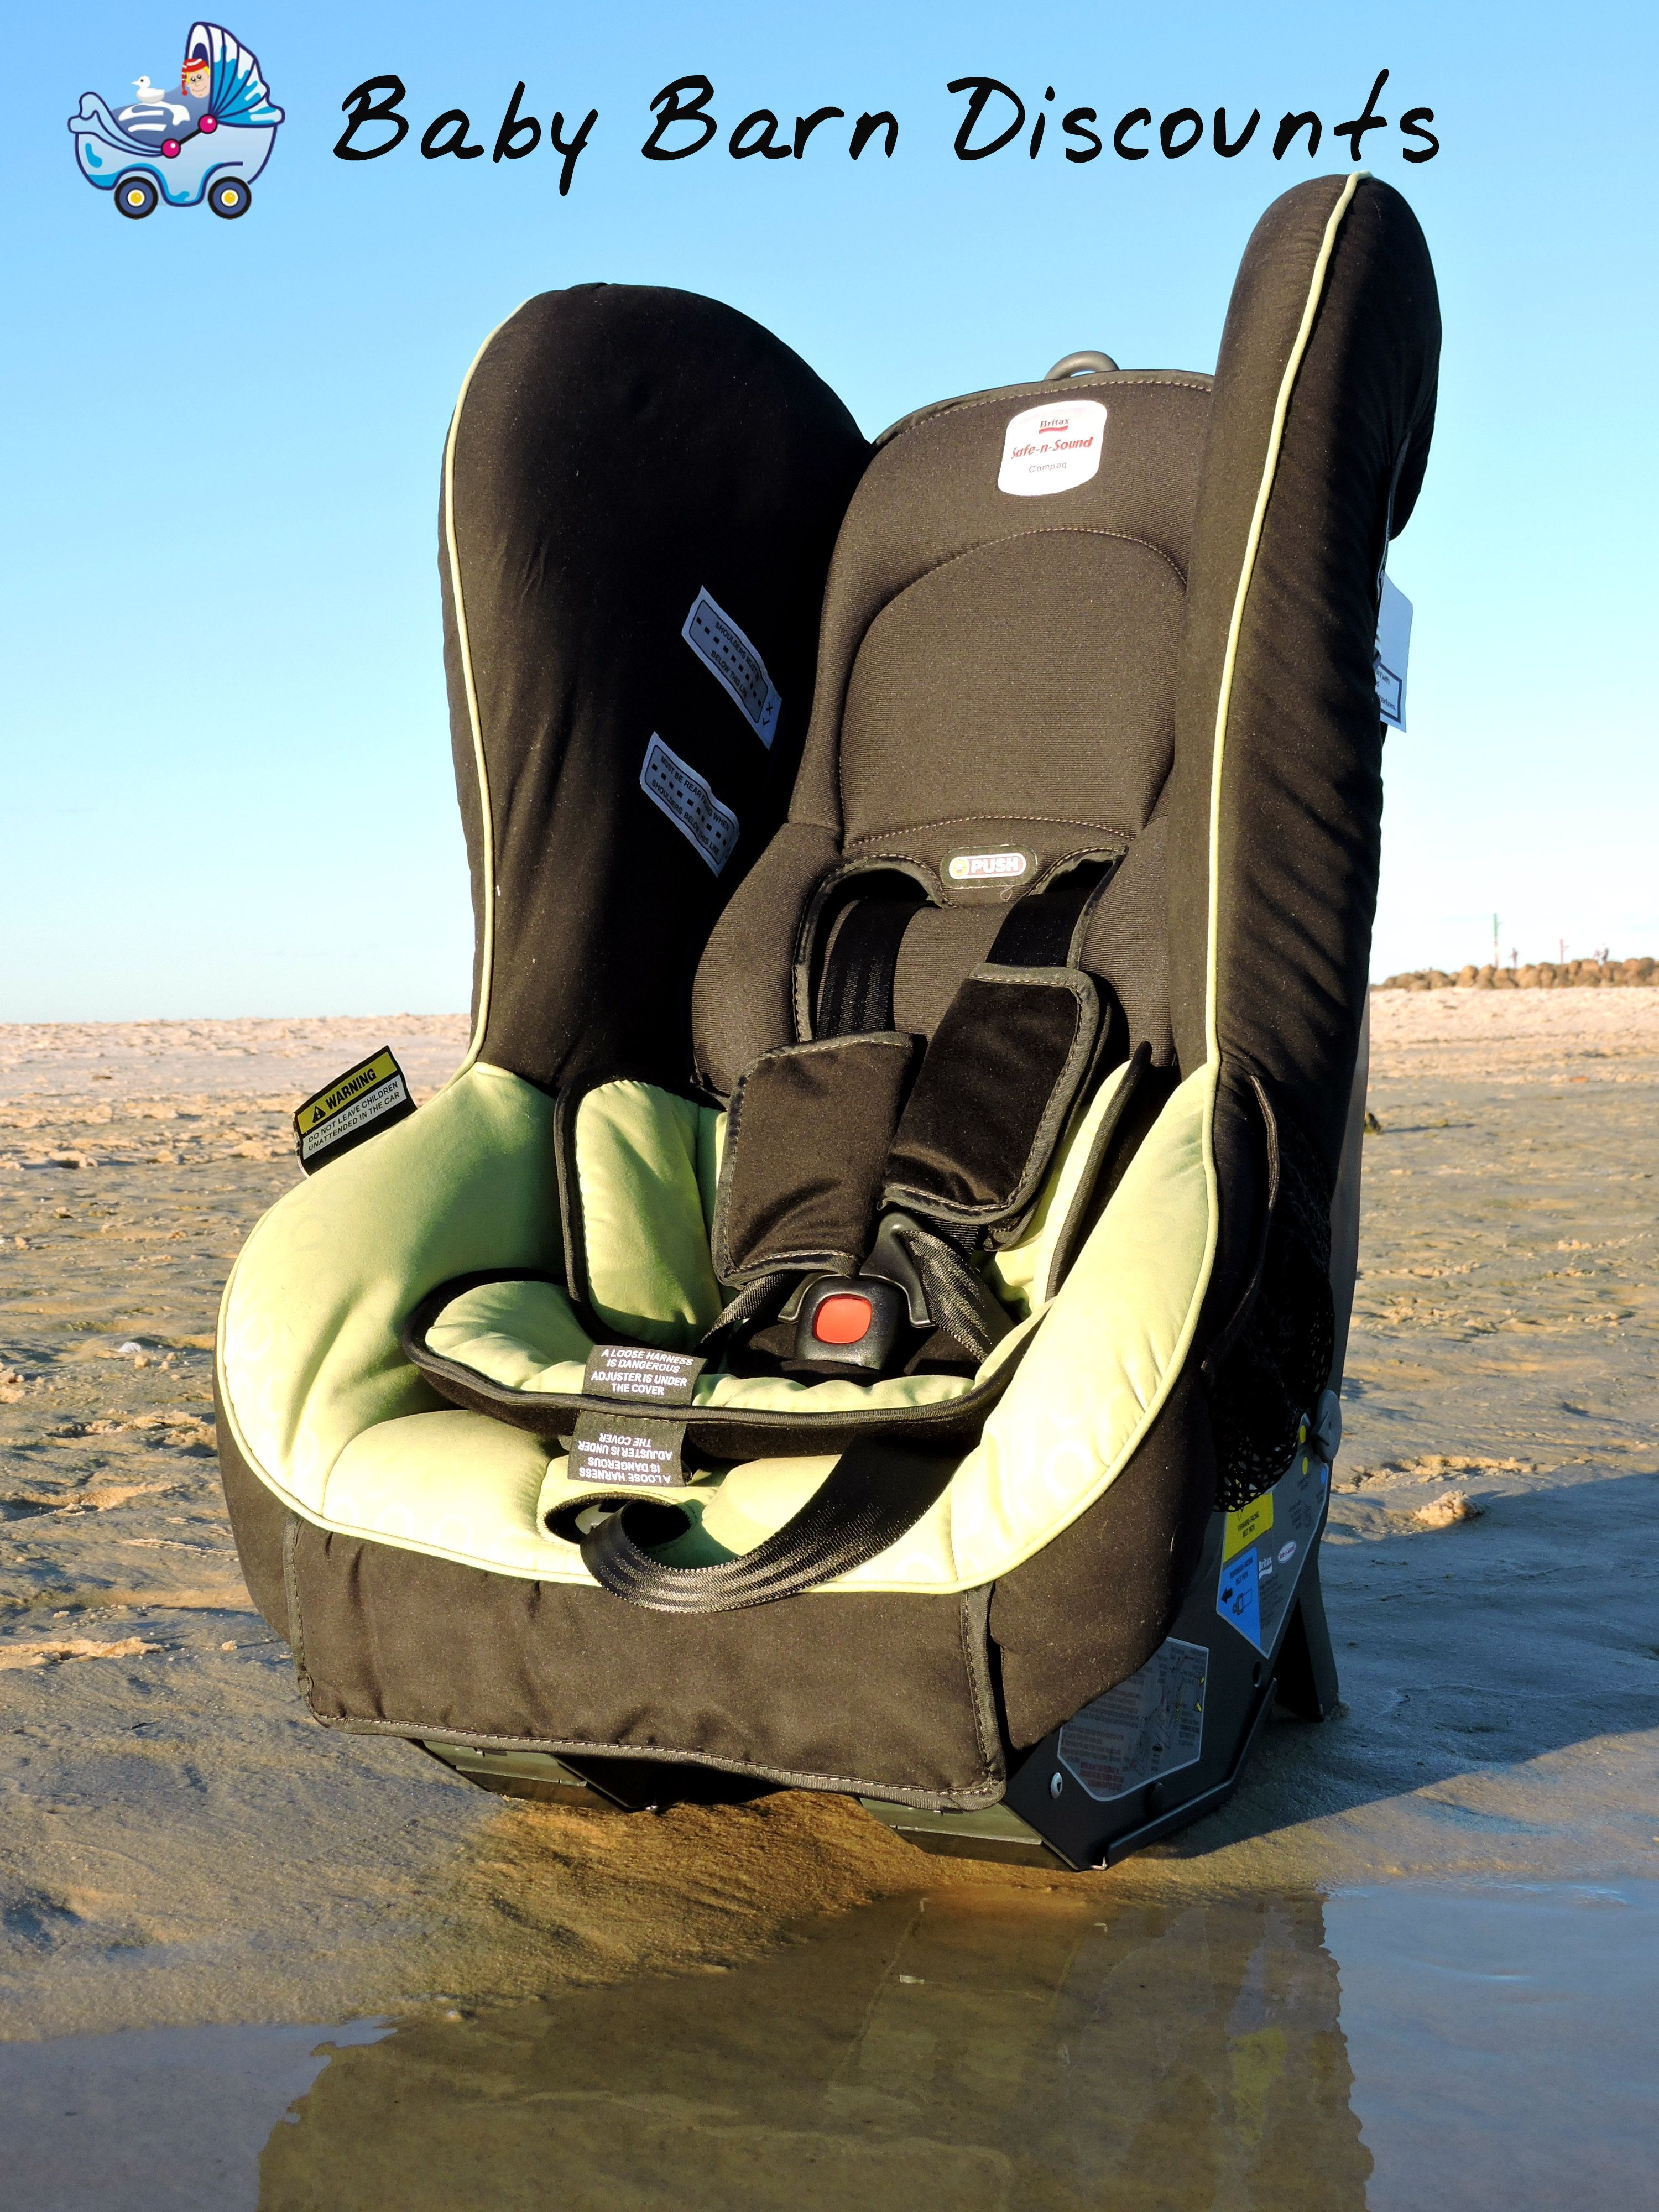 The Safe N Sound Compaq Mkii Convertible Car Seat Green Slim Line